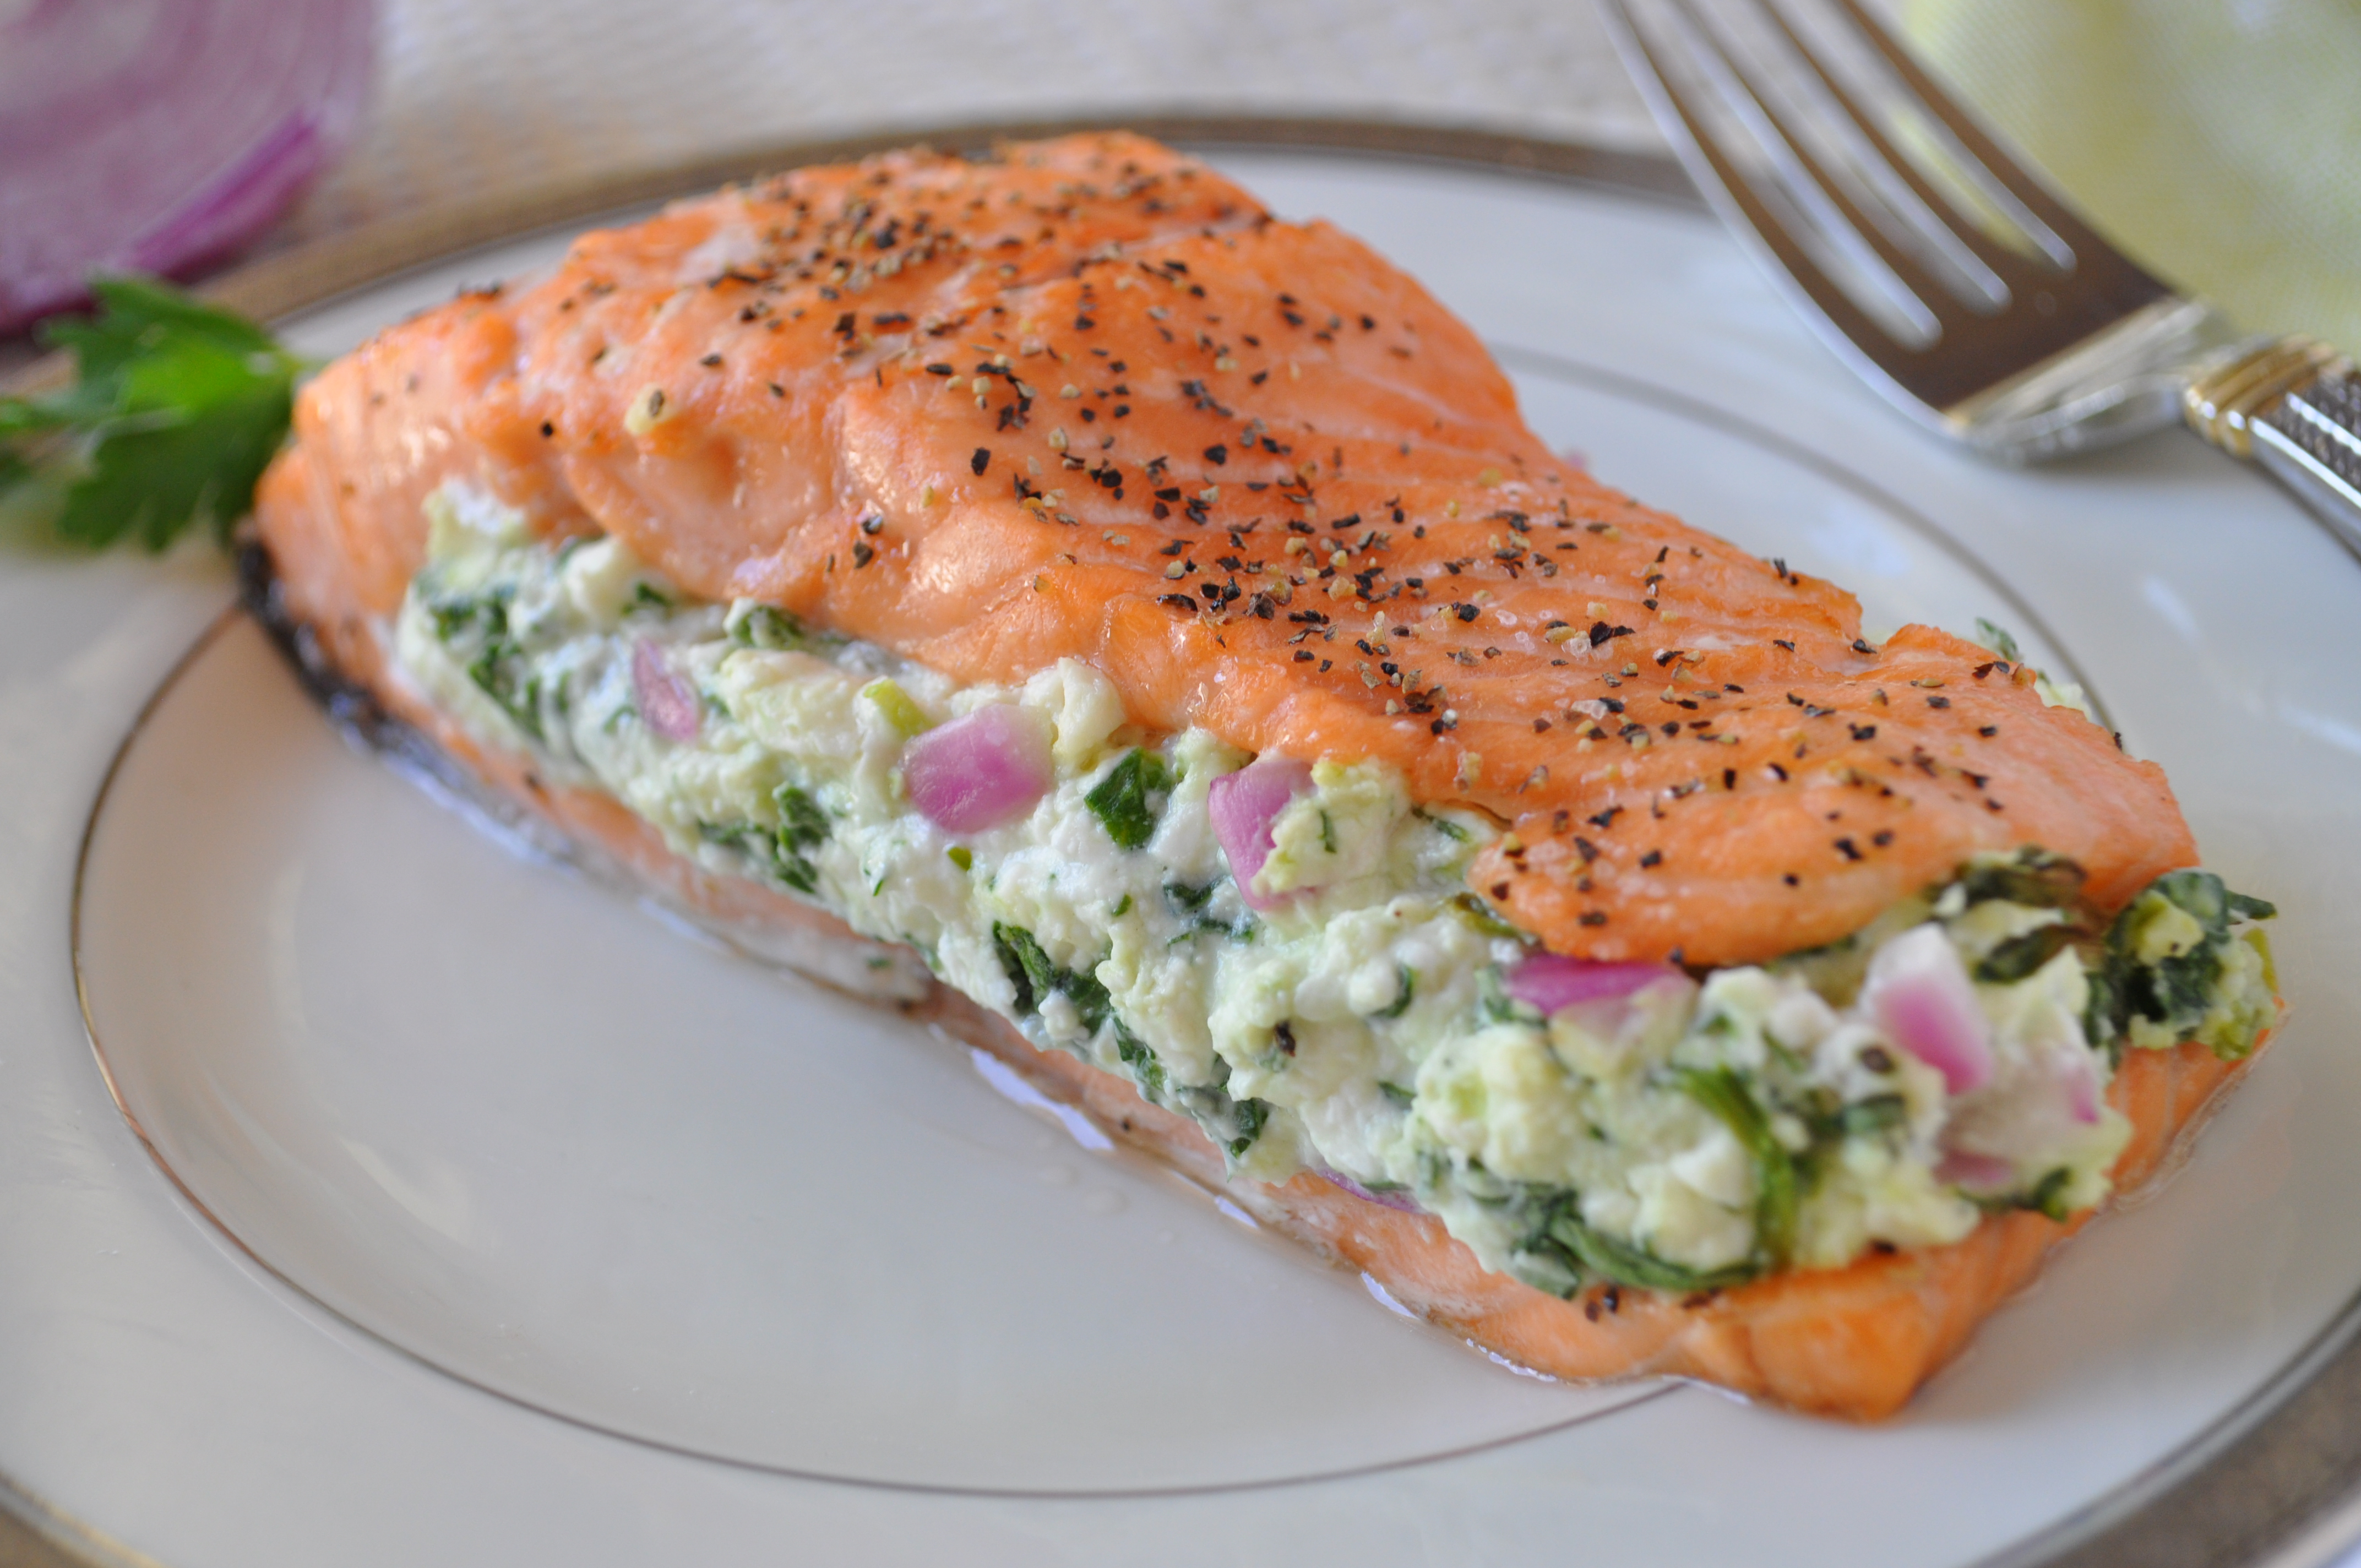 This recipe makes salmon preparation simple while still introducing a gourmet touch. With only five ingredients you can have an elegant dinner entree that takes less than thirty minutes from start to finish!